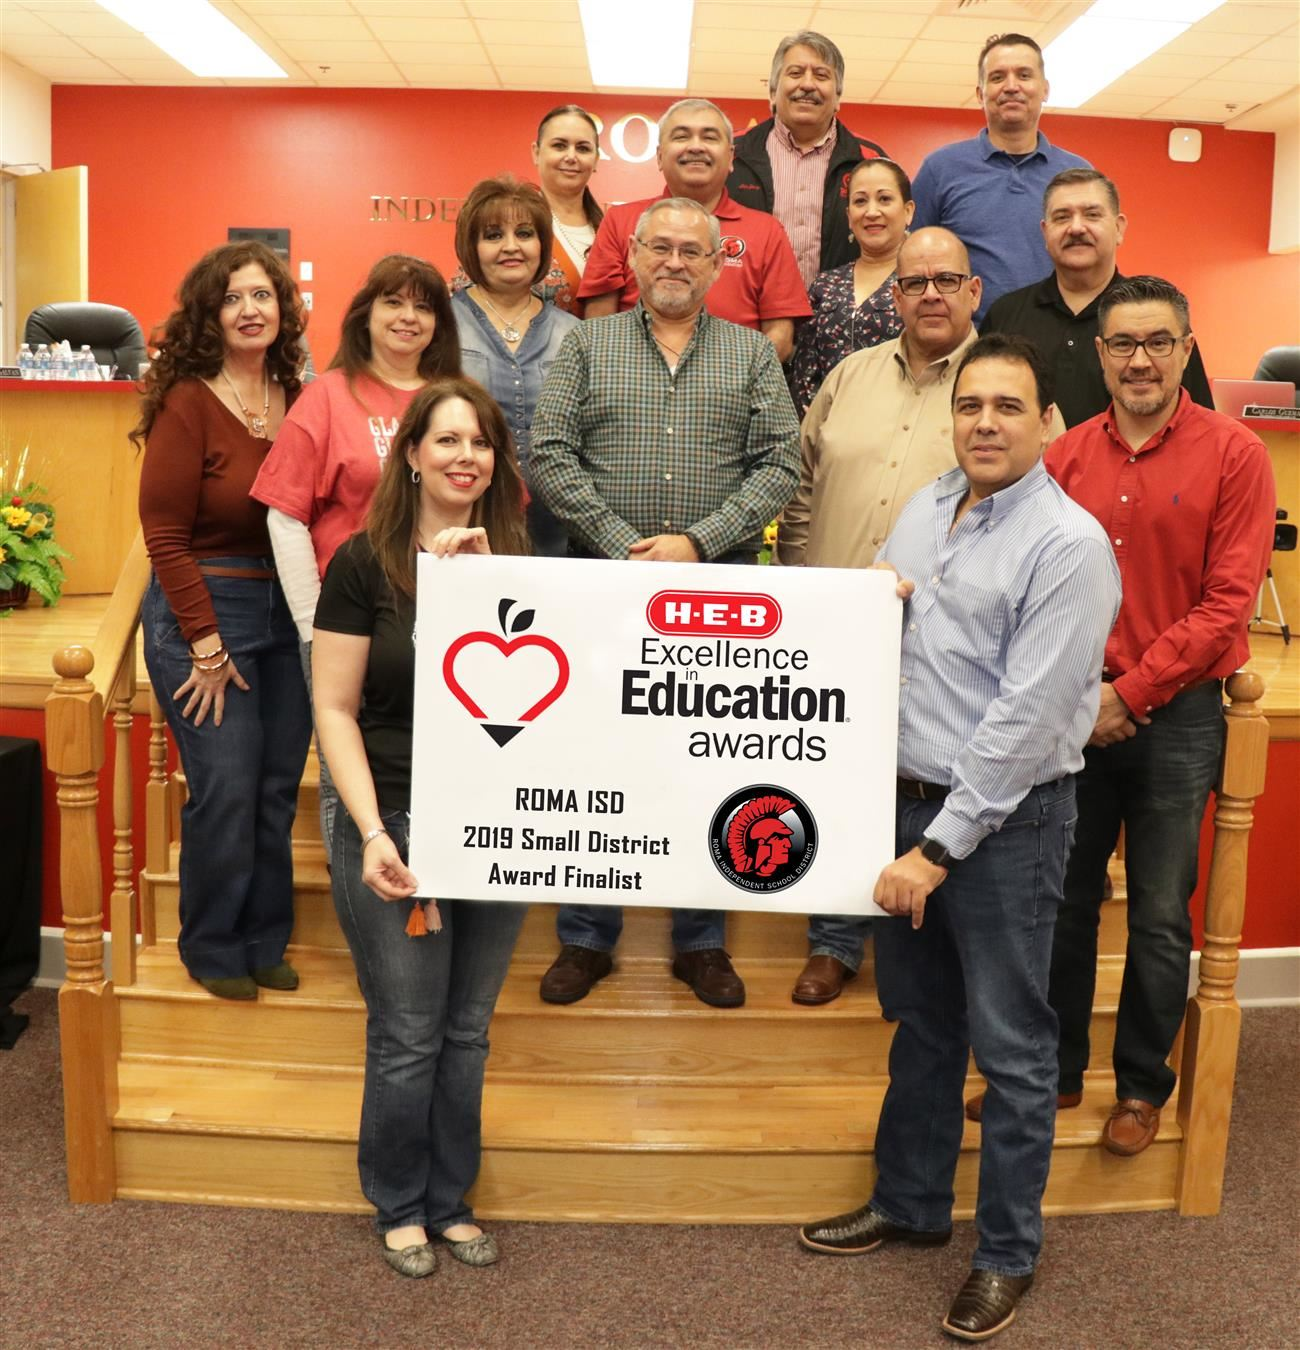 Roma ISD is proud to announce the district's selection as an H-E-B Excellence in Education 2019 Small District Award Finalist